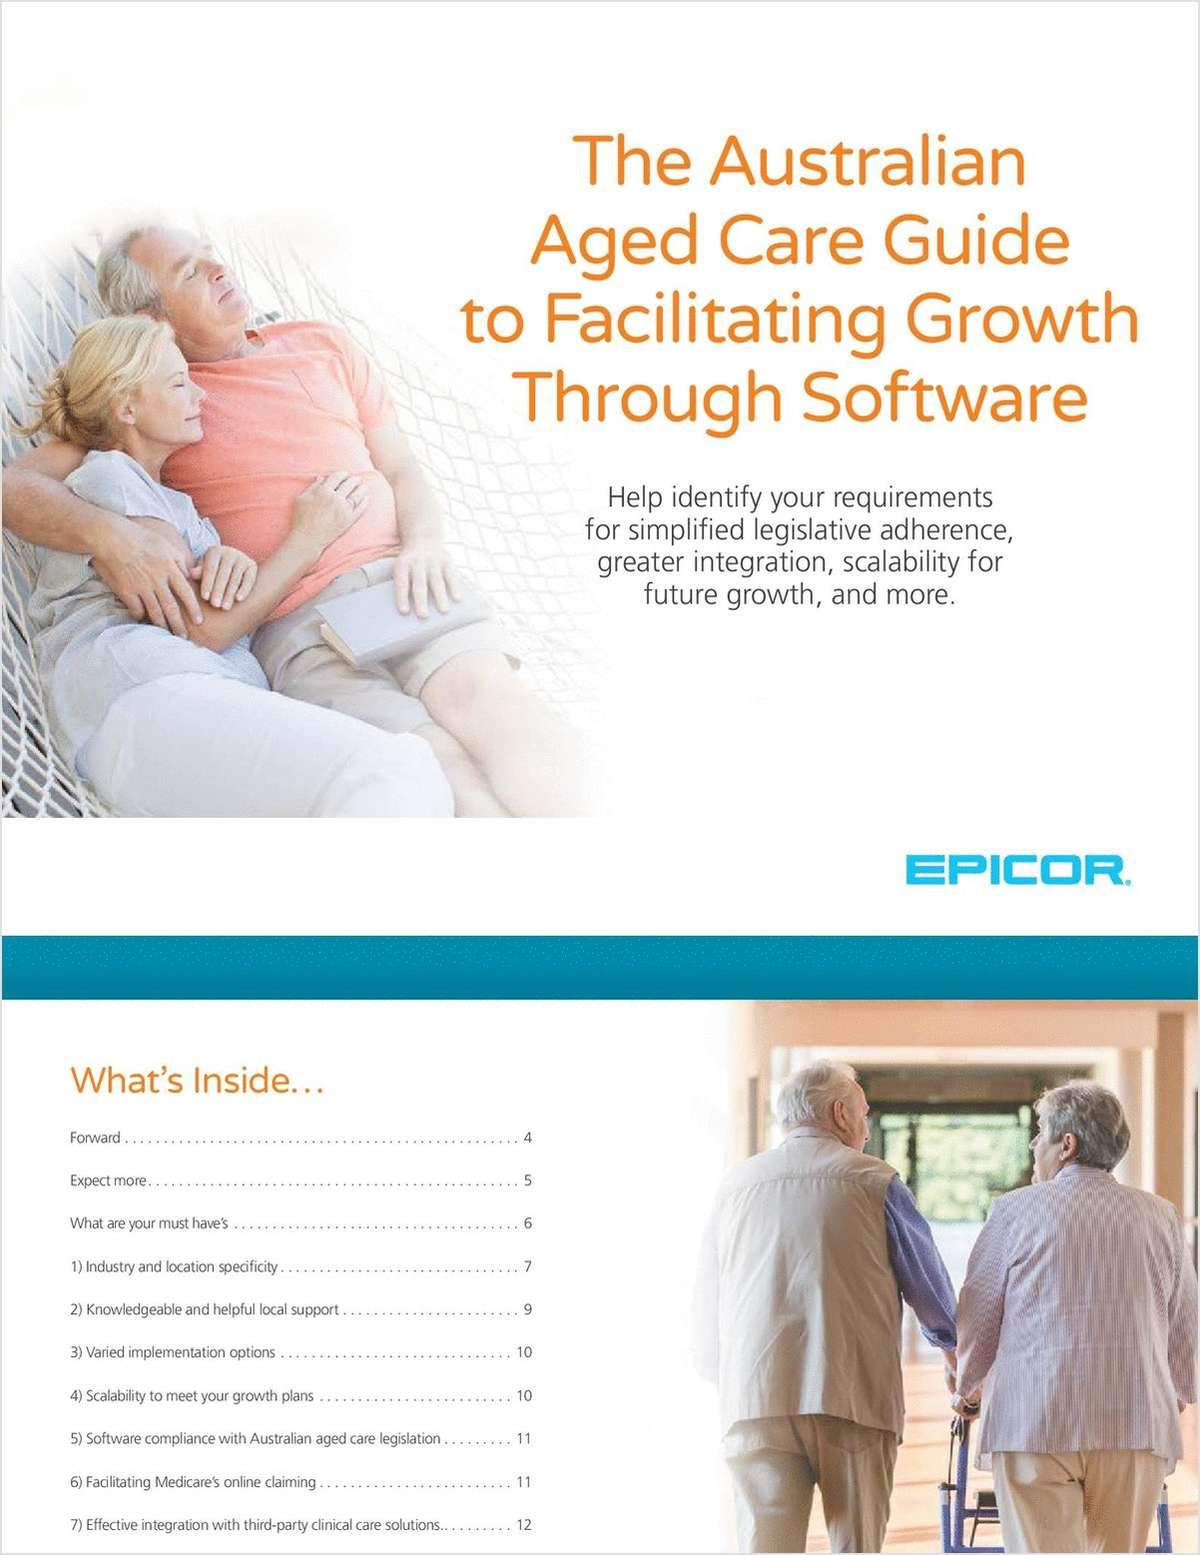 The Australian Aged Care Guide to Facilitating Growth Through Software